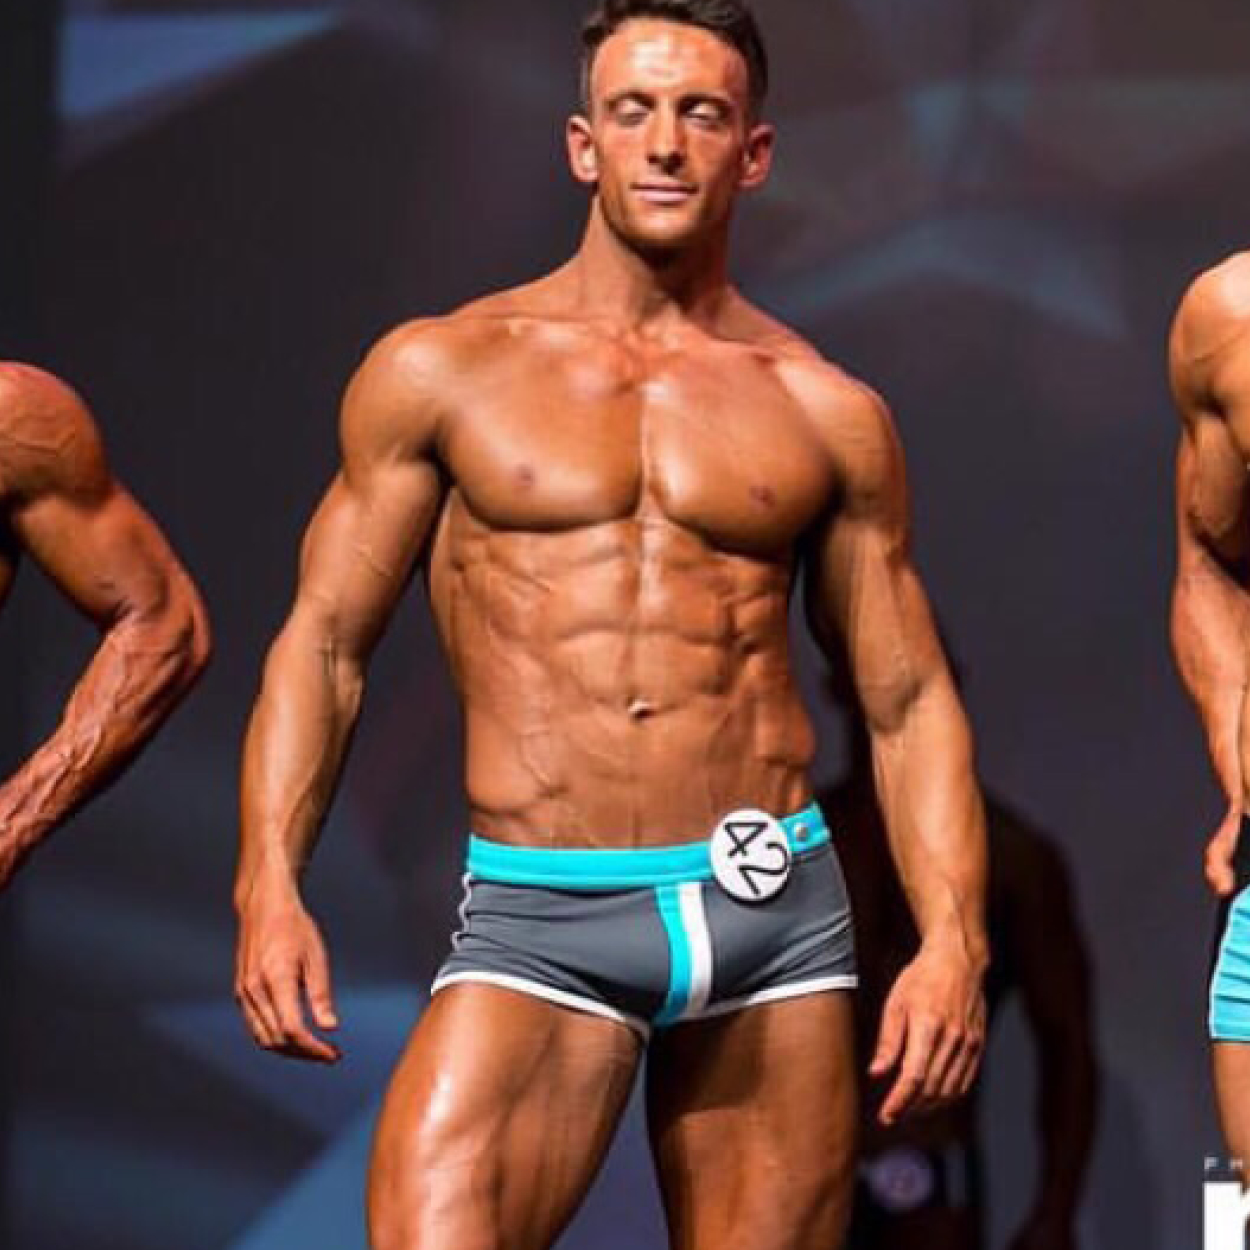 """DAVE FEATHERSTONE   """"I started my training with Adam at the end of June 2015, about a month after singing up for my first competition, Miami Pro in October 2015.  I was hearing so much """"BroScience"""" when discussing competing which started to confuse me so I started looking for a coach. I followed Imogen Parfitt on Instagram for a while and saw her transformation whilst being coached by Adam. Adam had also won the competition himself so I knew Adam would be perfect for me.  We live too far apart for one-to-one training so Adam coached me online, at no point was this a problem in the slightest. From Day 1 Adam was on hand with the nutrition program, training and answering any questions I had. Adams responses were always very prompt and clear.  Within a short space of time I noticed change so my motivation was sky high and I knew I could 100% trust the advice Adam was giving me. At times when I struggled to motivate myself I'd get a message off Adam which was the little nudge I needed to keep going.  The result; I won my very first competition taking the Under 75kg Fitness Model title and winning my Pro Card. The transformation pictures speak for themselves. I could not have achieved this without Adam and I'm excited to work on our next project(s).  I can't recommend Adam highly enough for competition prep."""""""